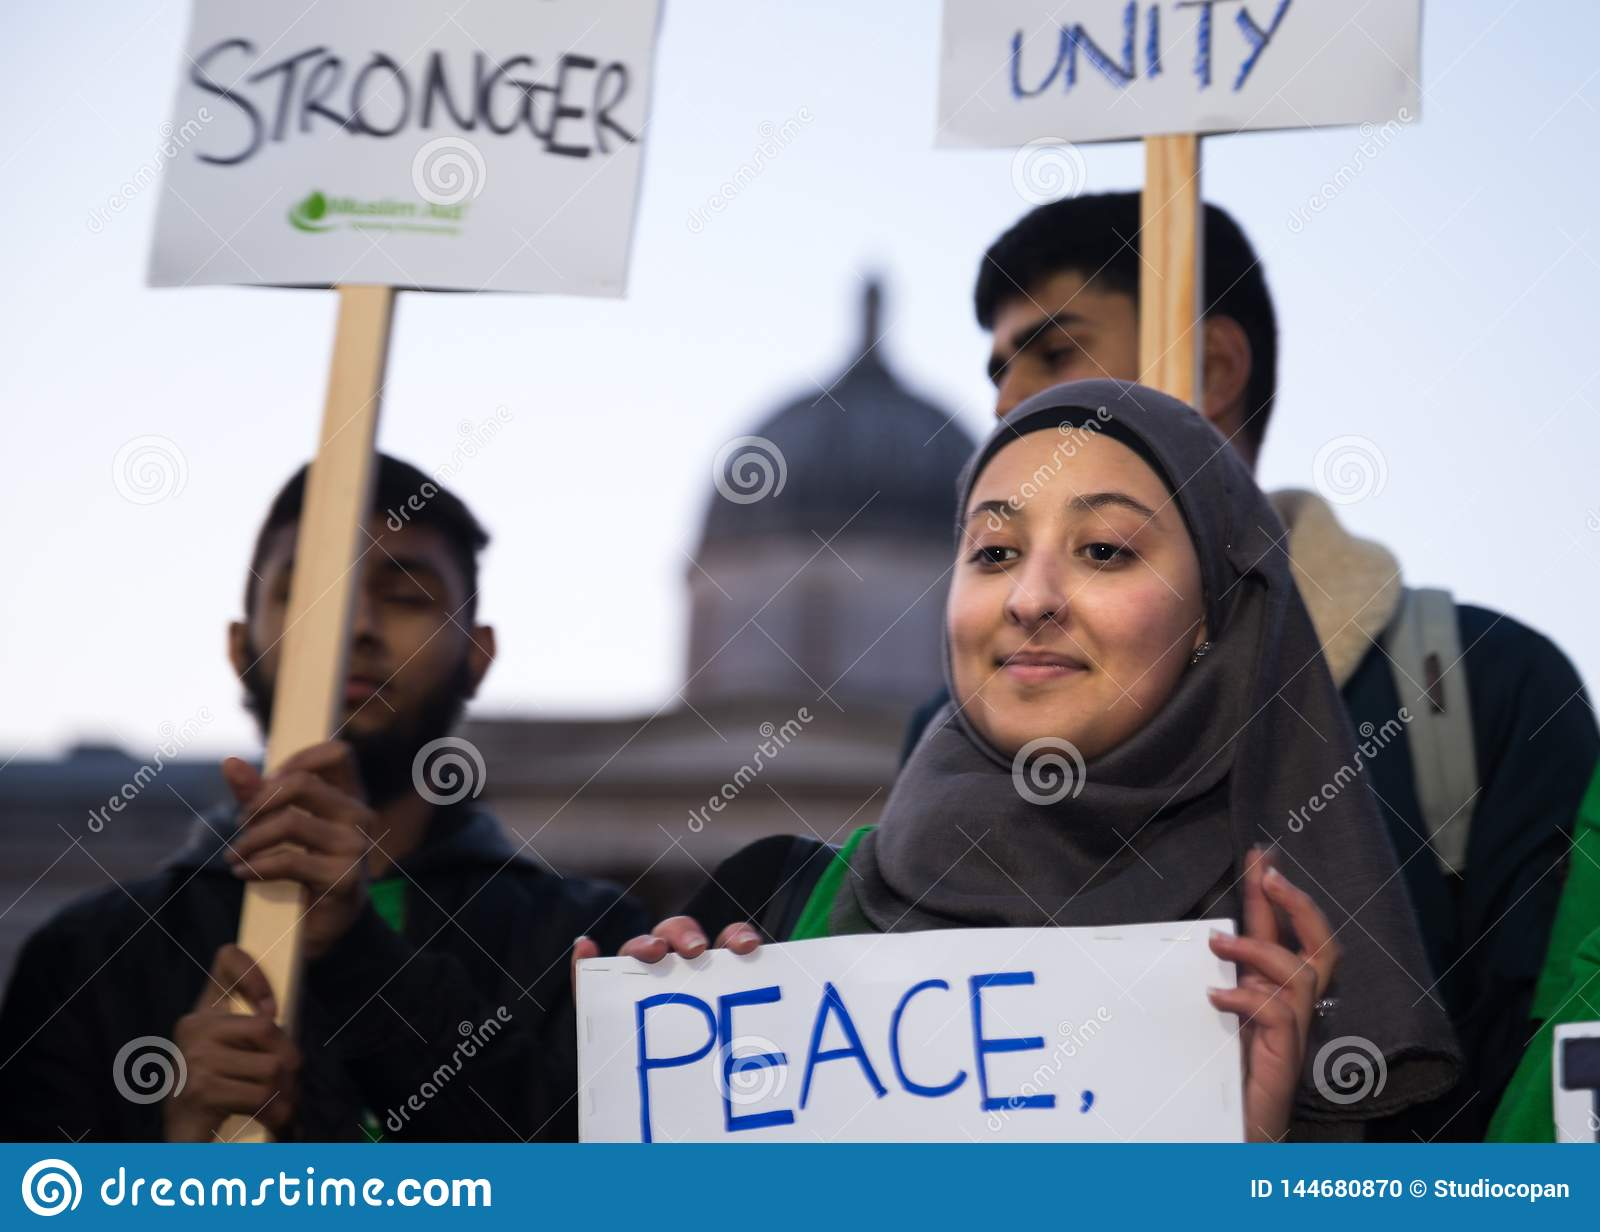 Young Woman in Hijab Holding Sign After 2017 Westminster Bridge Attack